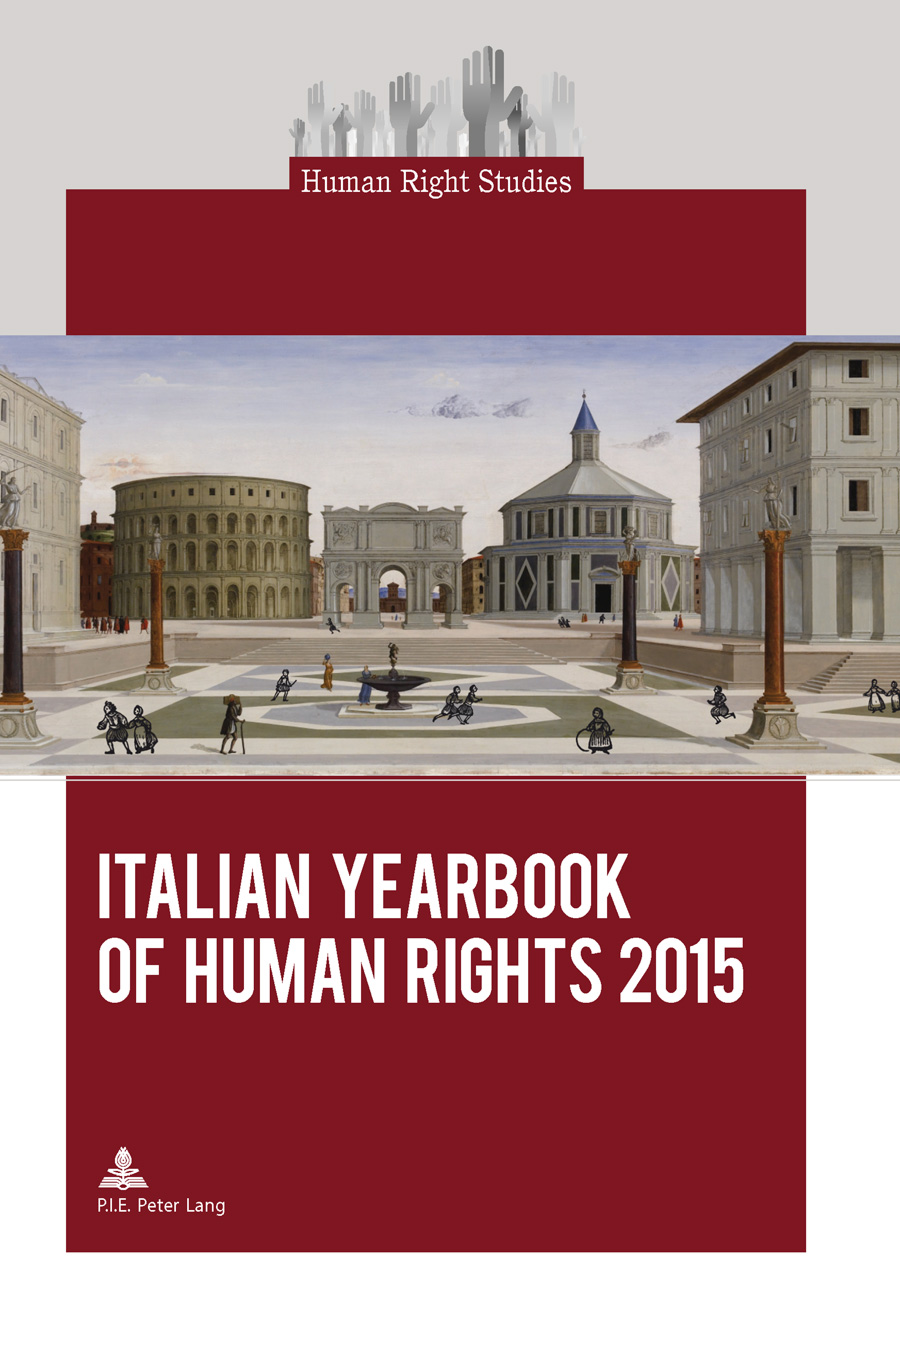 Cover of the Italian Yearbook of Human Rights 2015